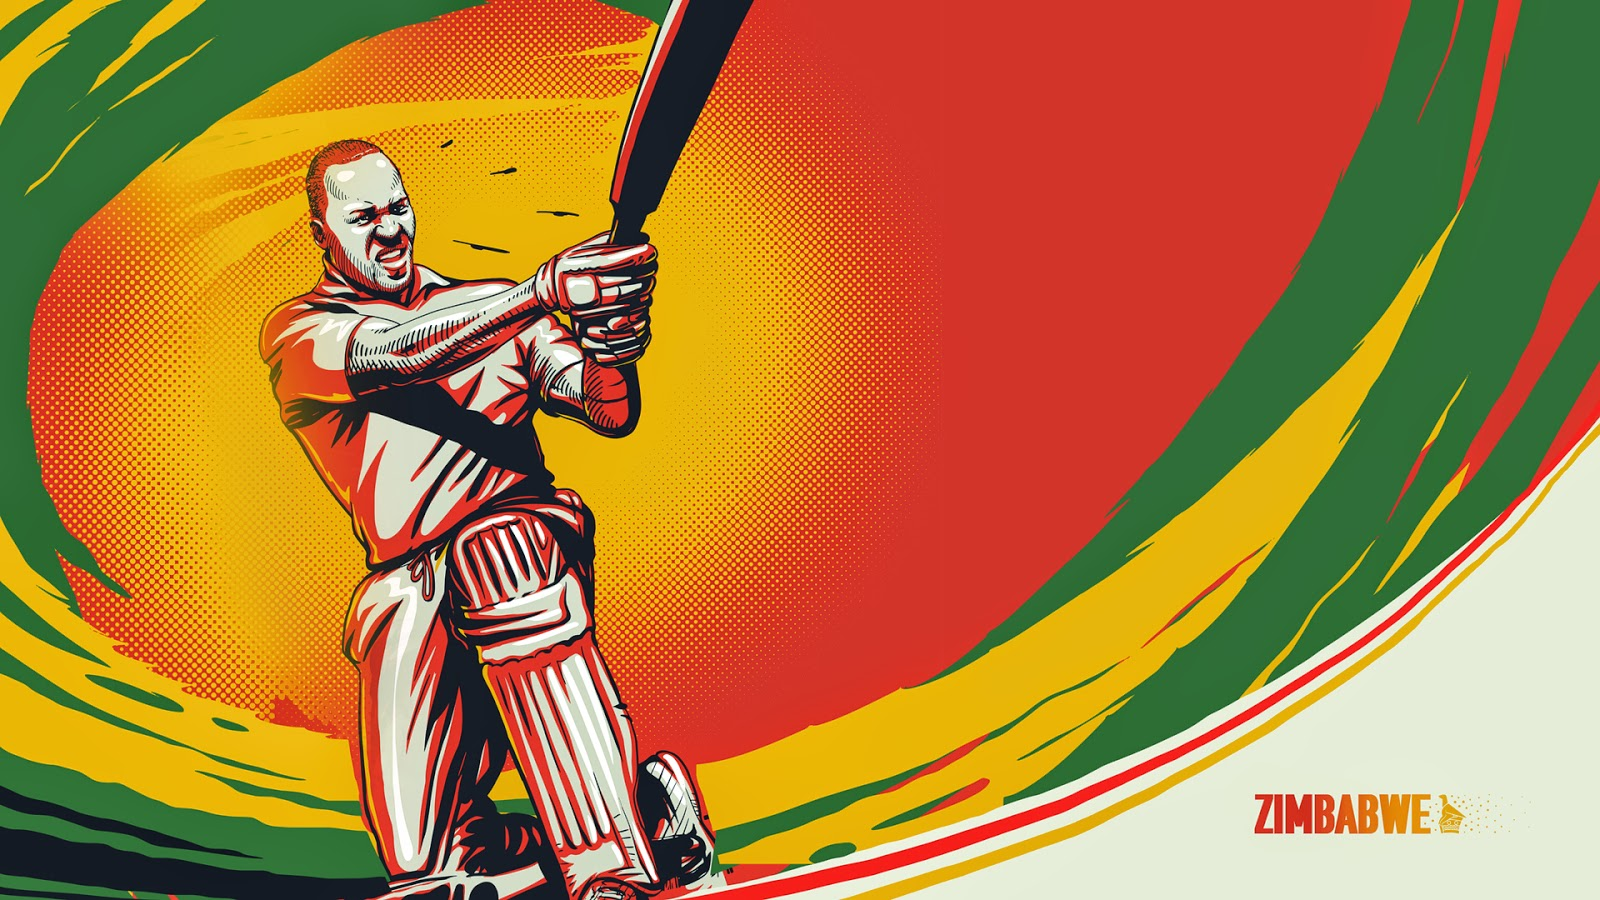 Hamilton Masakadza Zimbabwean cricketer illustration sketch